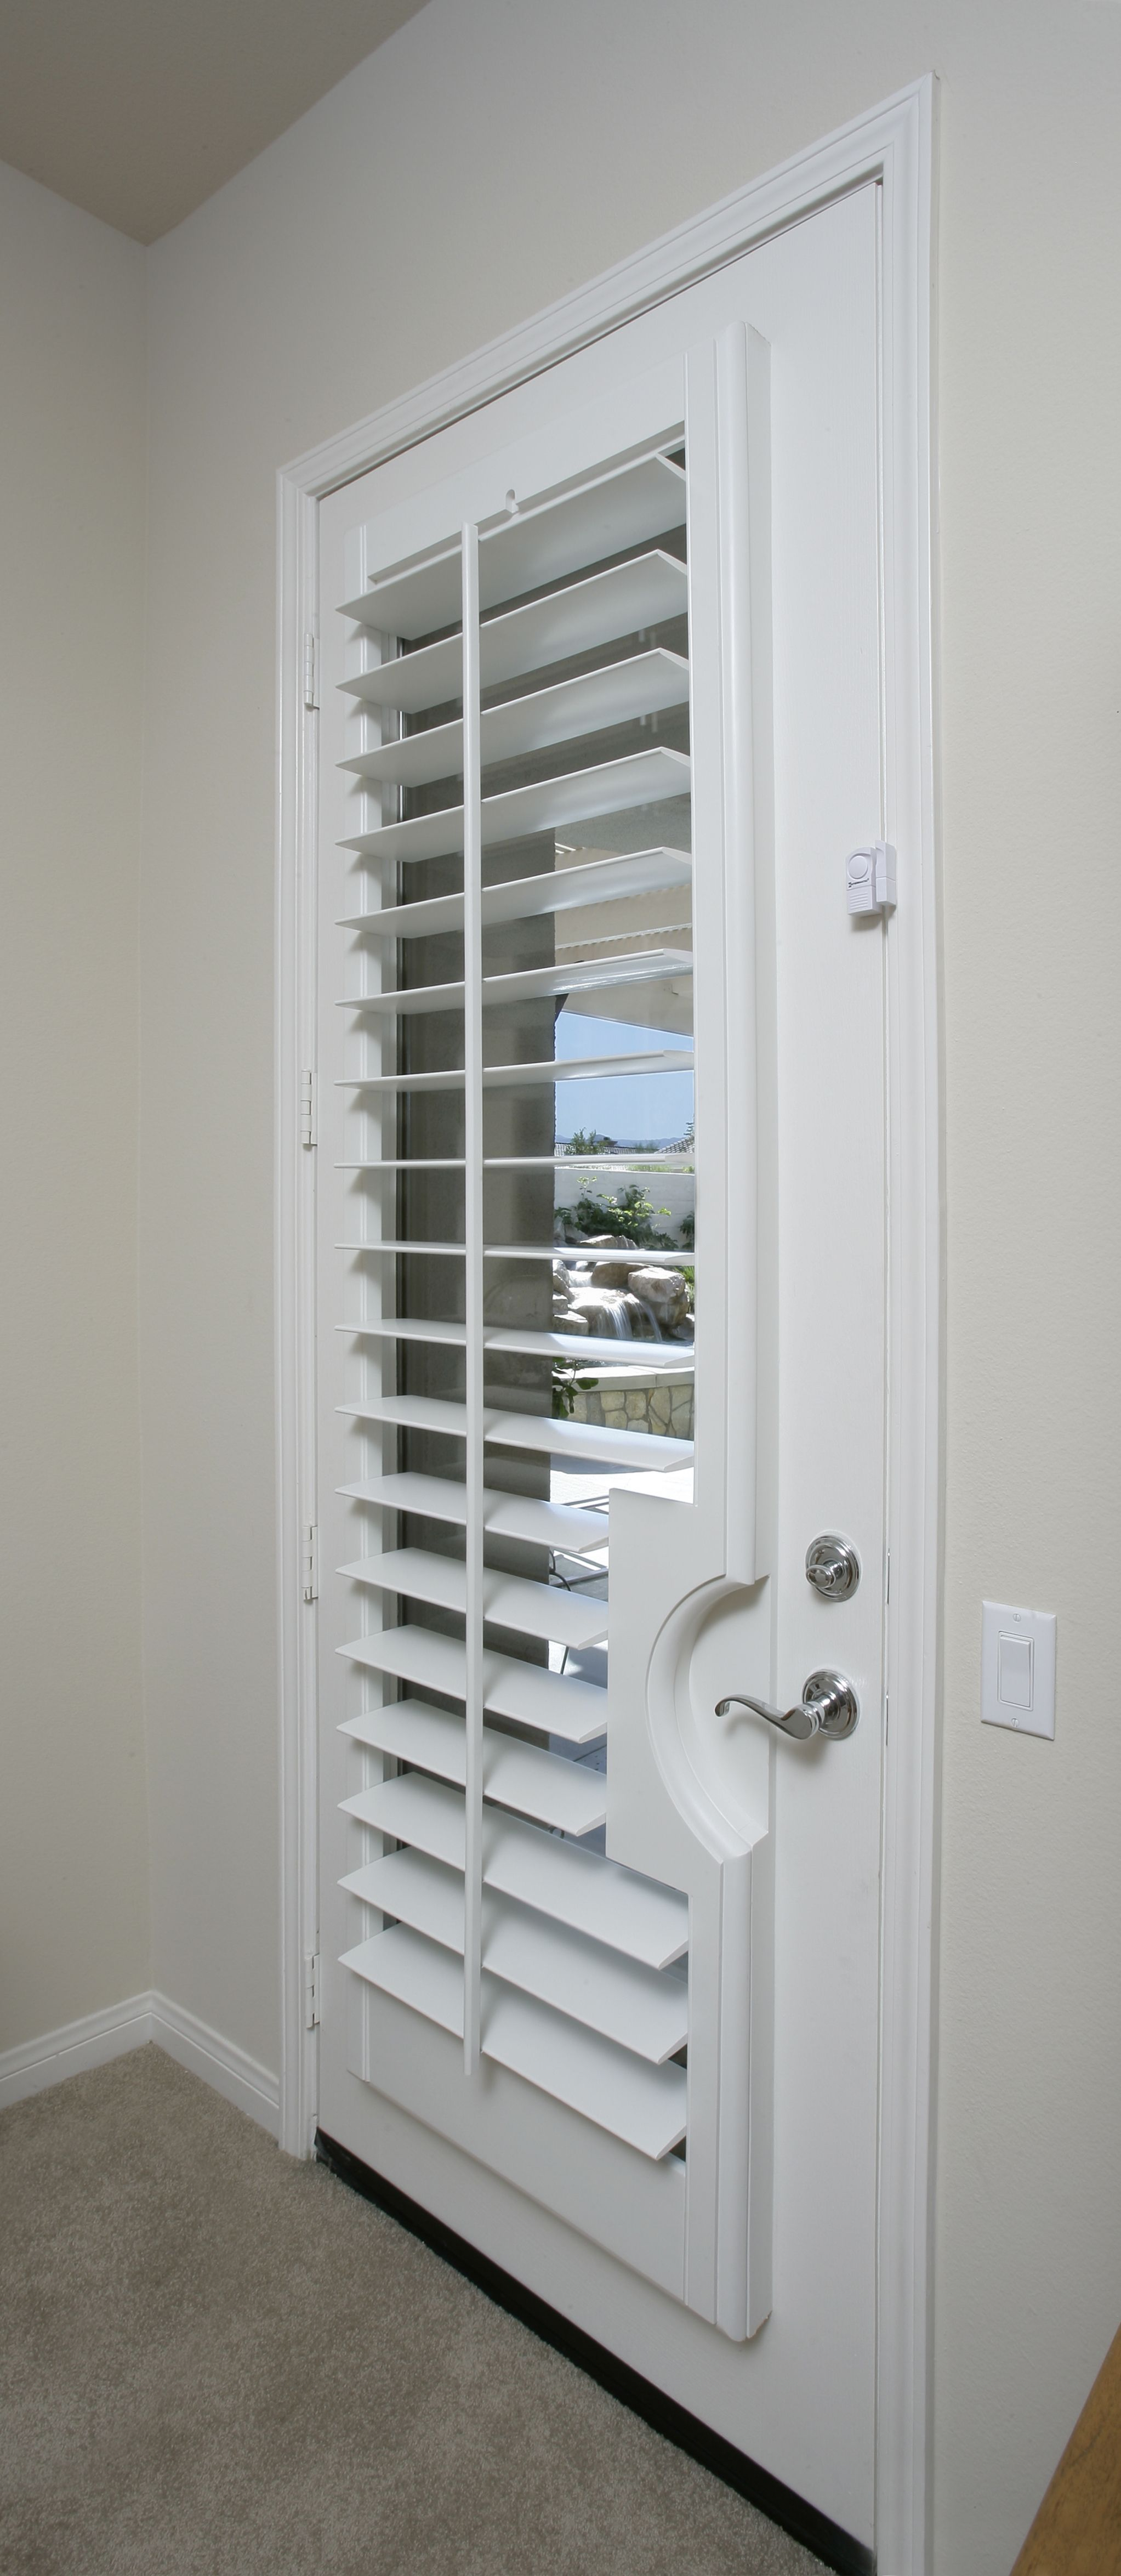 Plantation shutters designed specifically for your doors can be